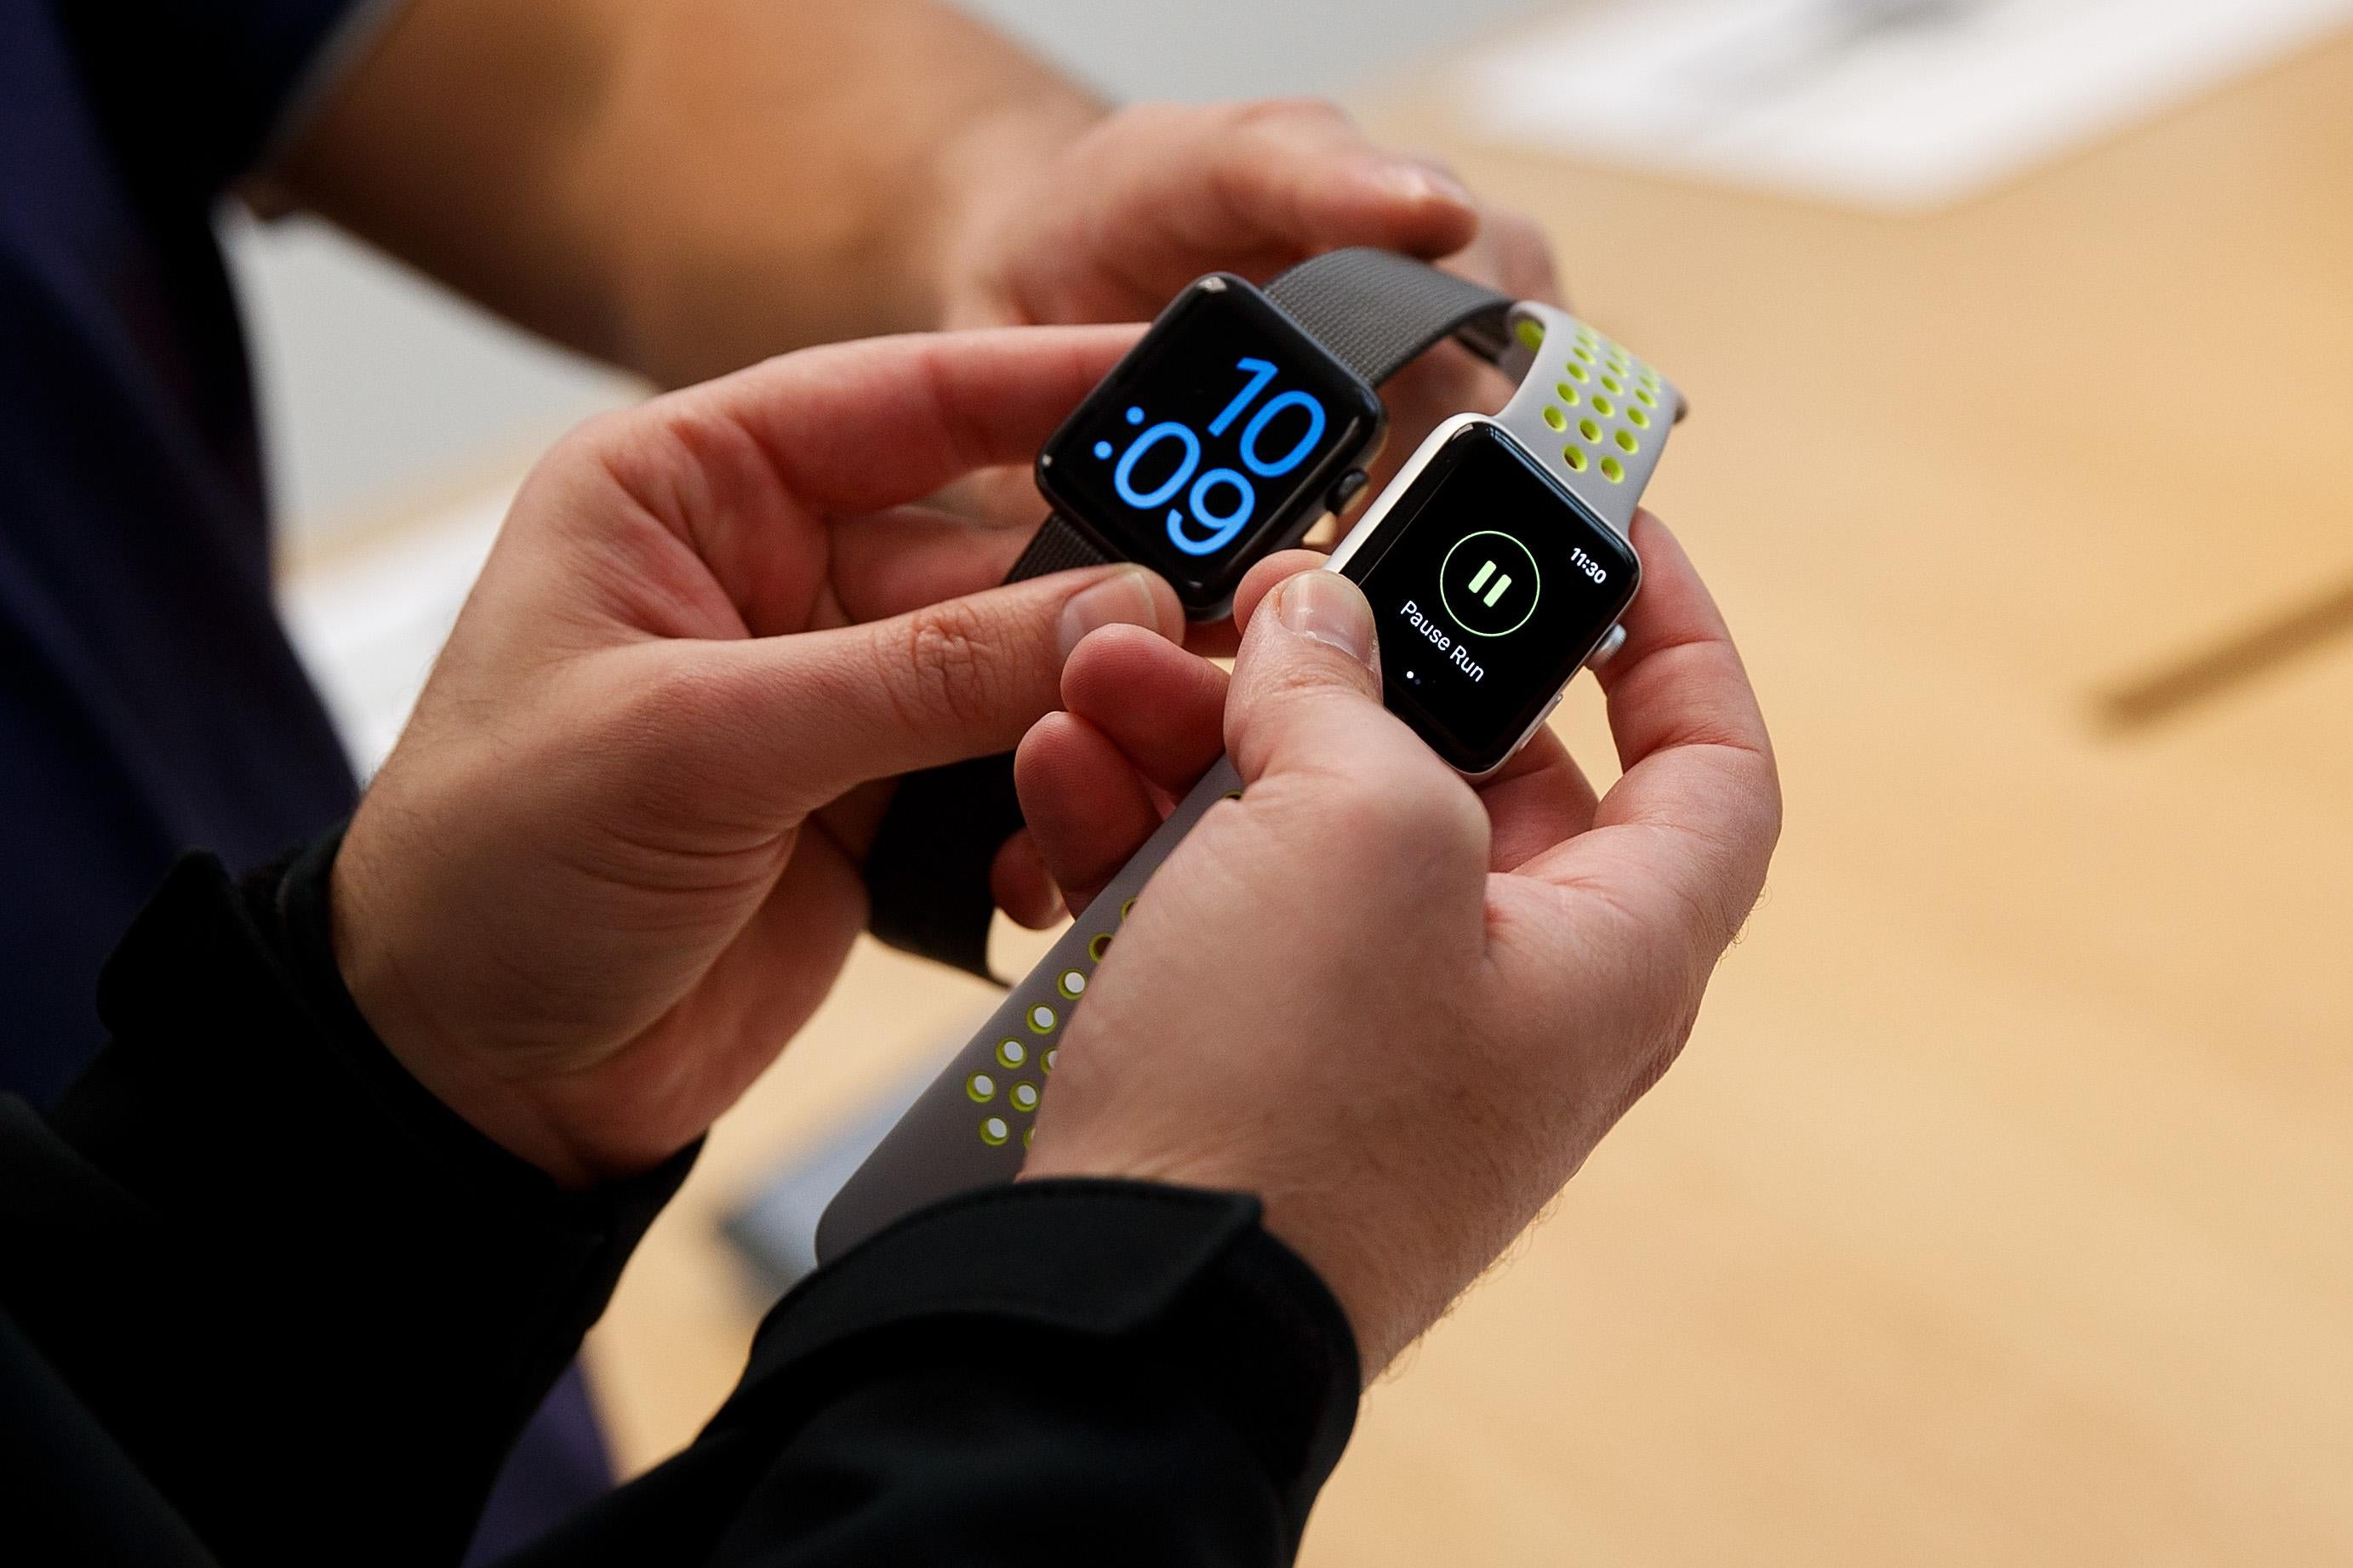 A customer looks at Apple Watch Nike+ at an Apple Store in the SoHo neighborhood of Manhattan, October 28, 2016 in New York City.